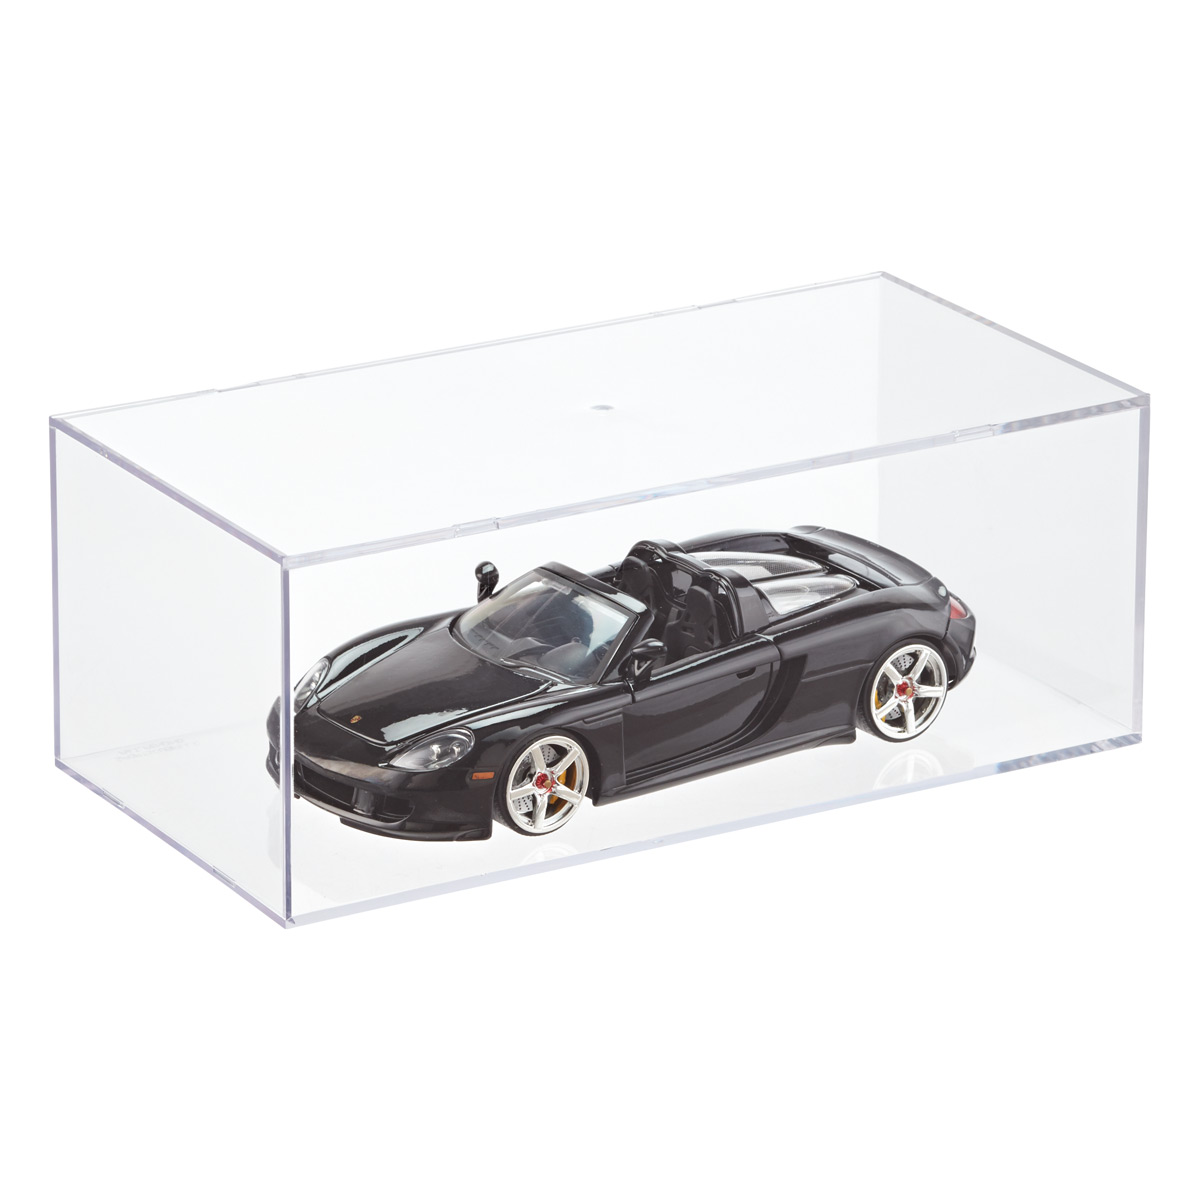 Ballqube Race Car Display Cube